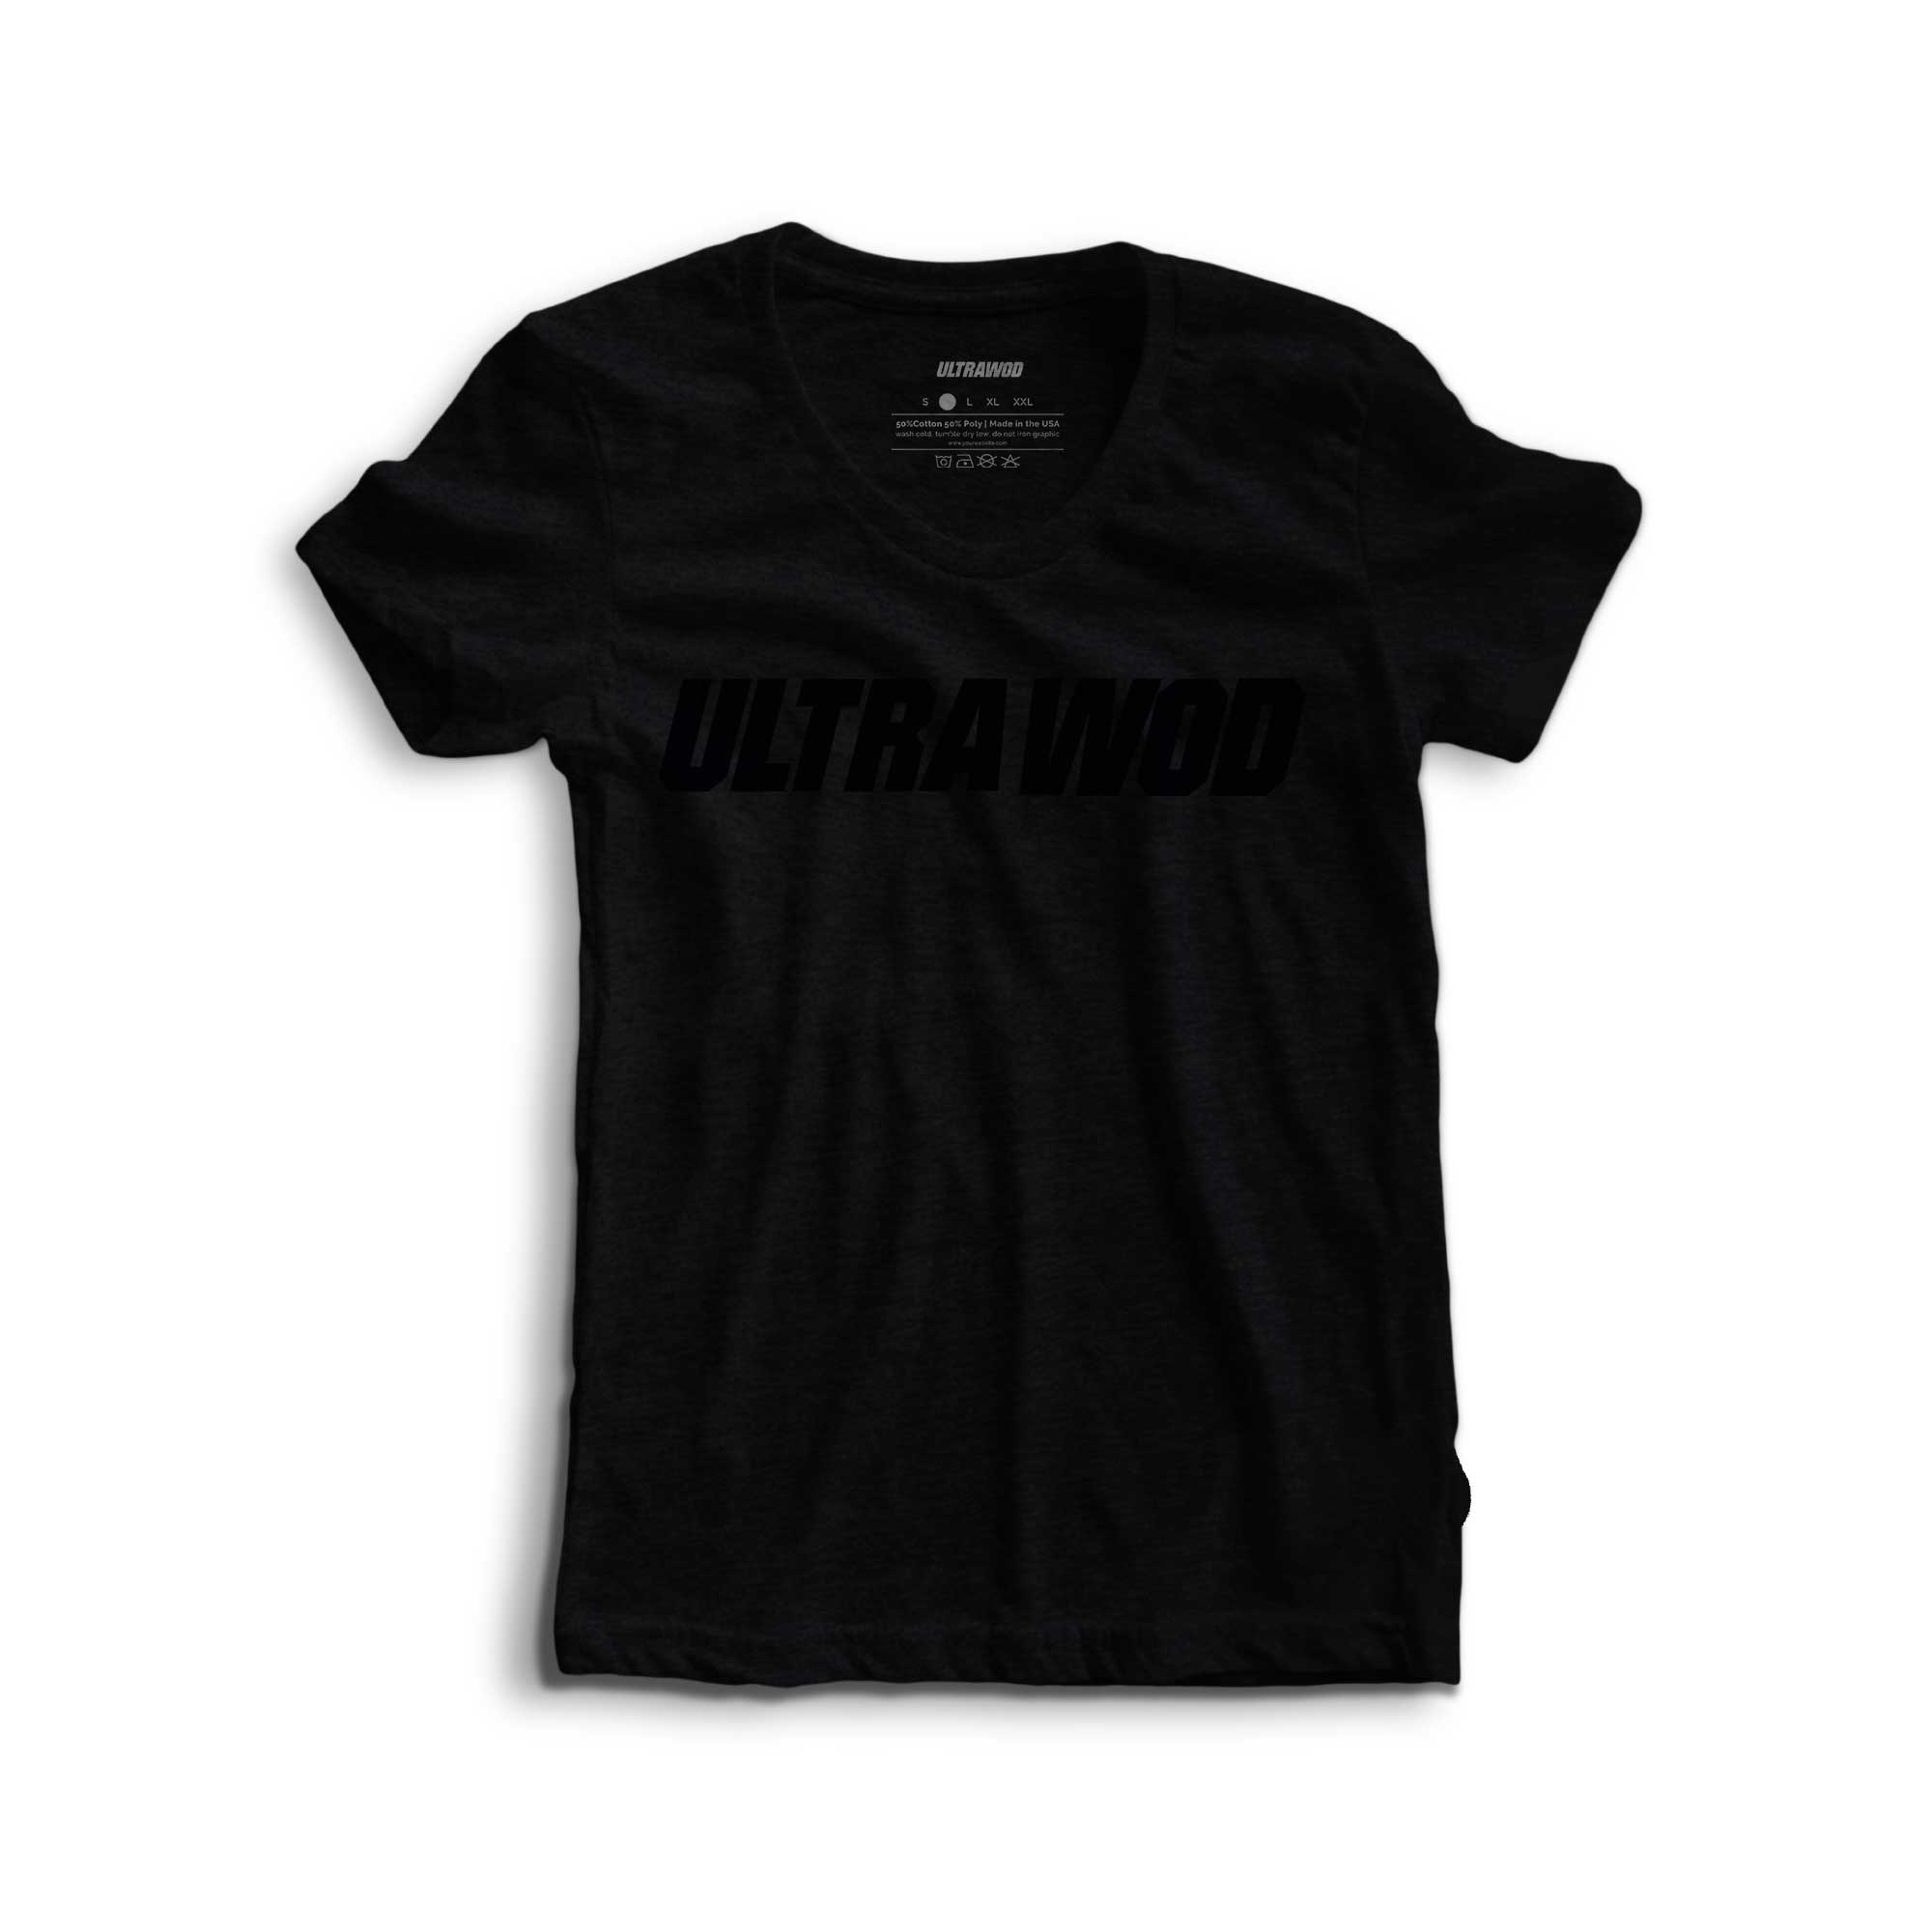 Camiseta Feminina All Black UltraWod